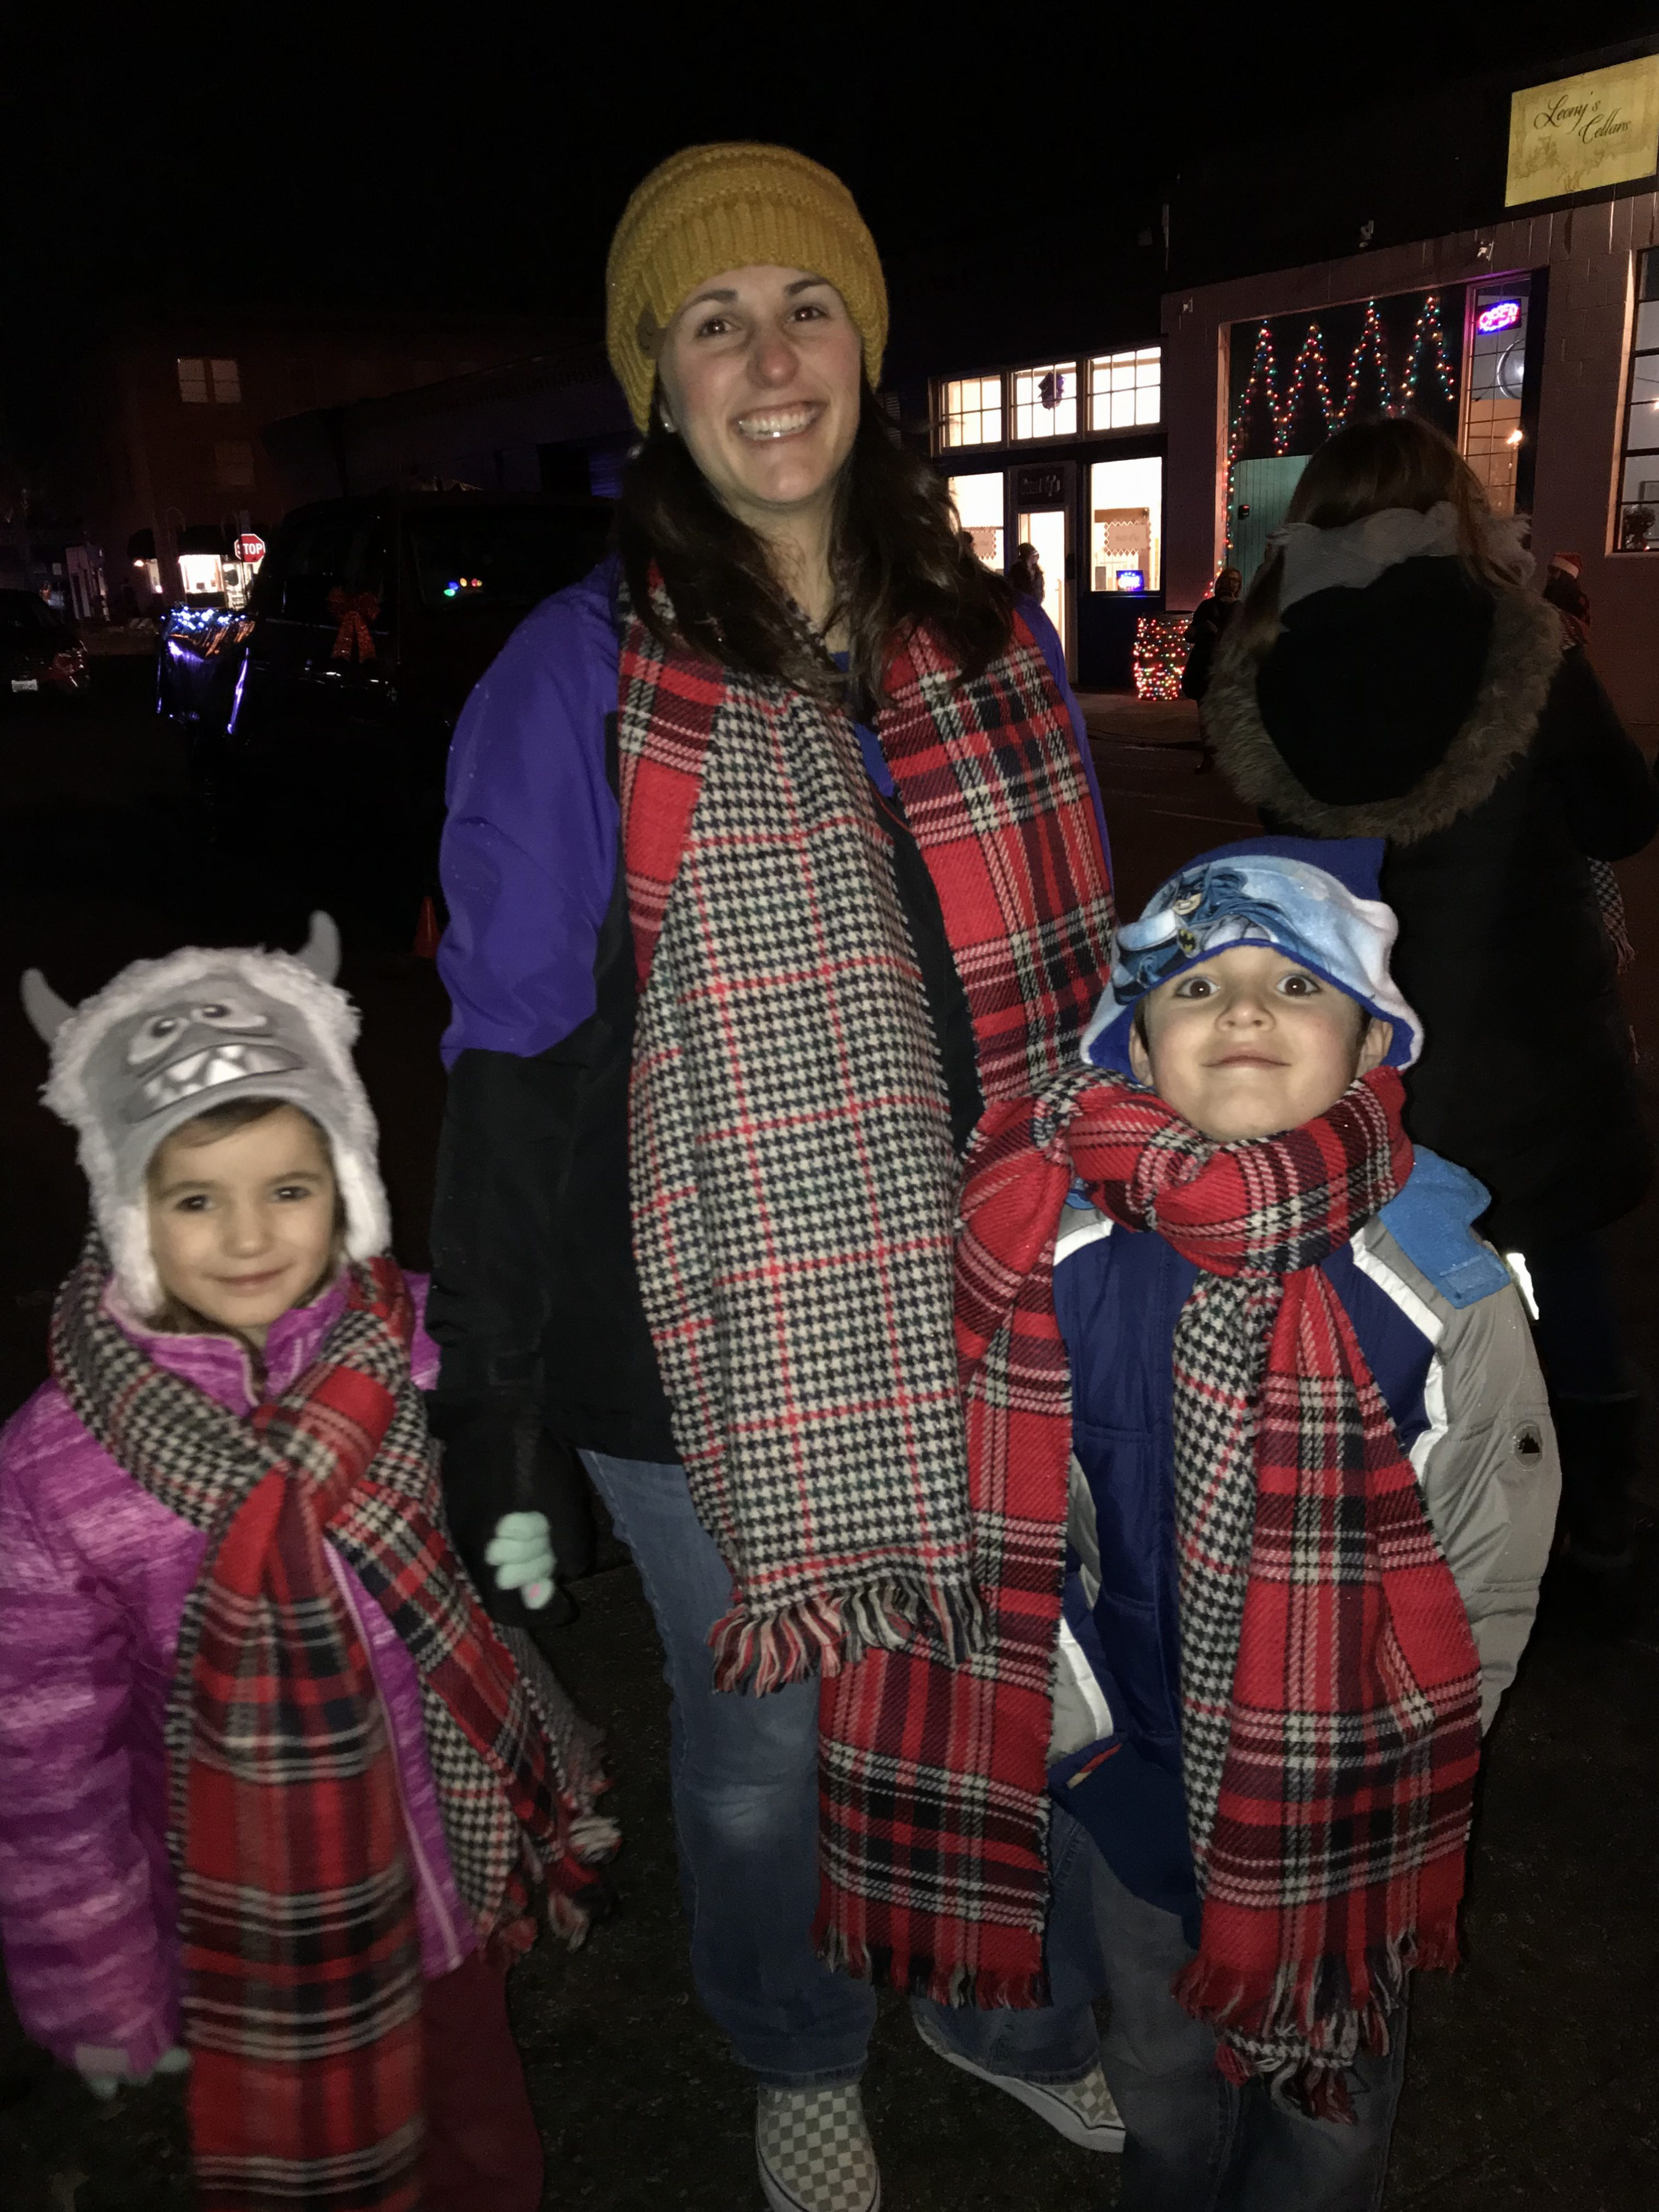 A mom and two kids dressed warmly